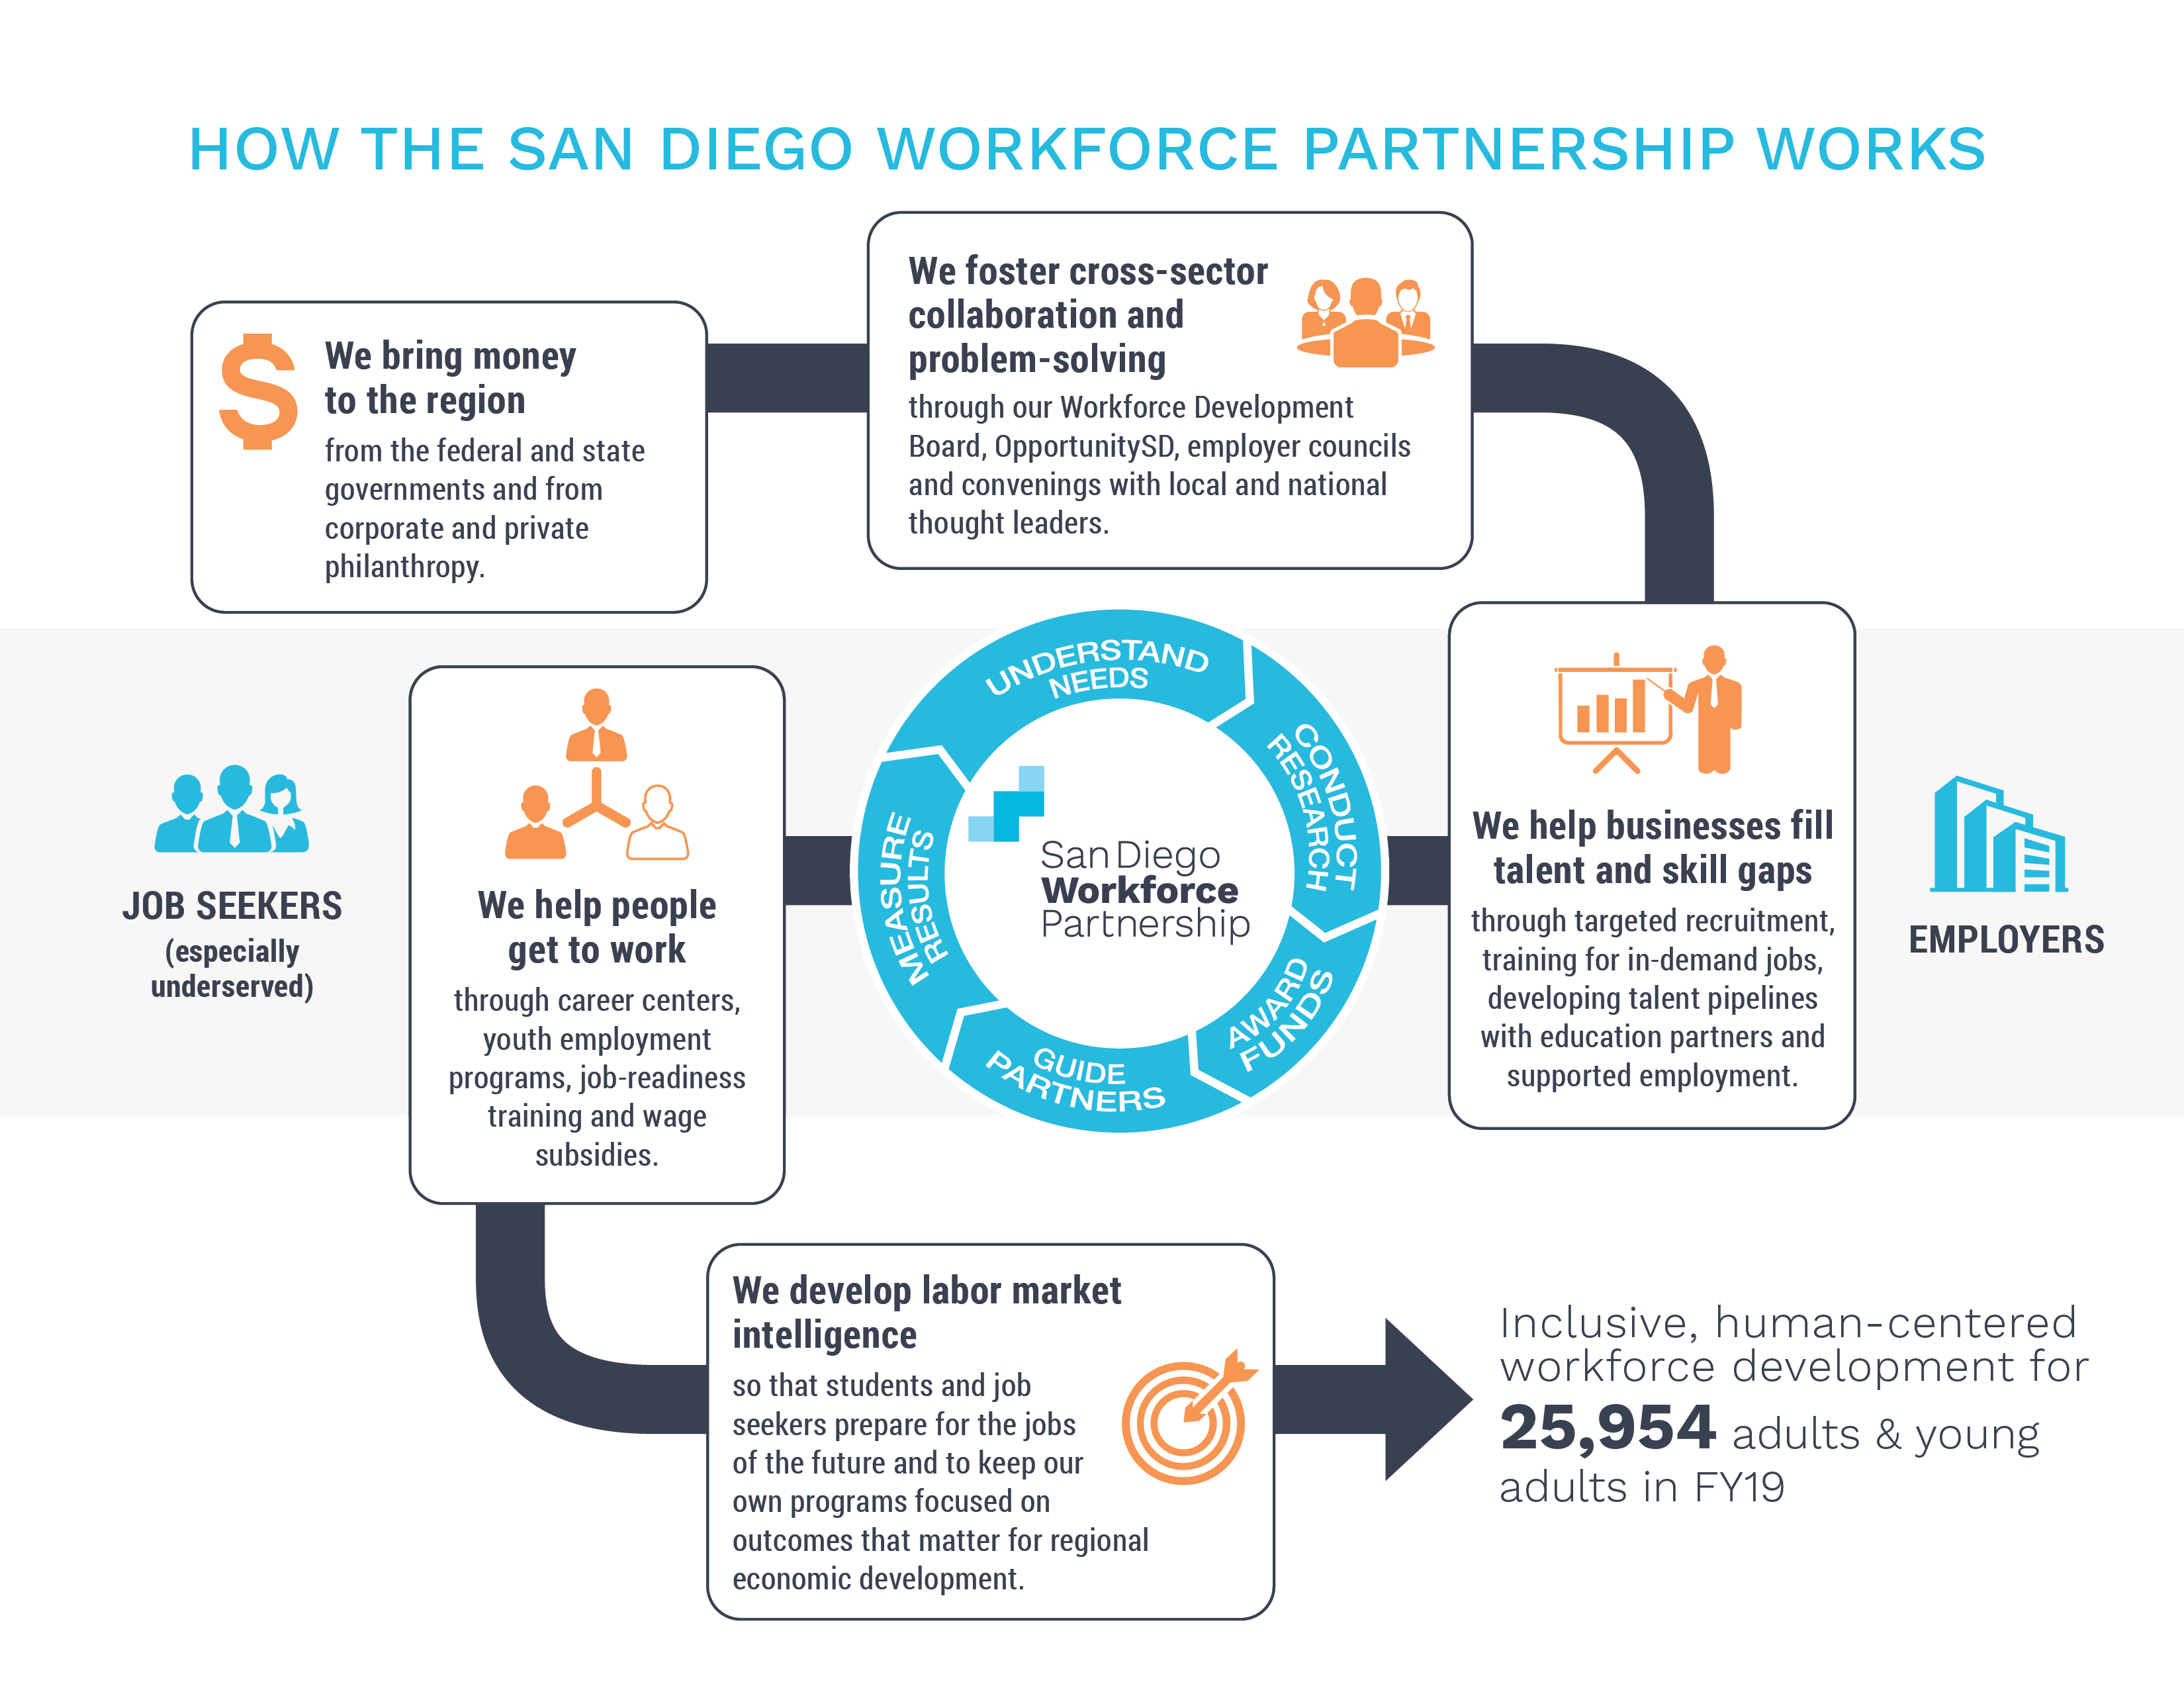 How the San Diego Workforce Partnership works FY19